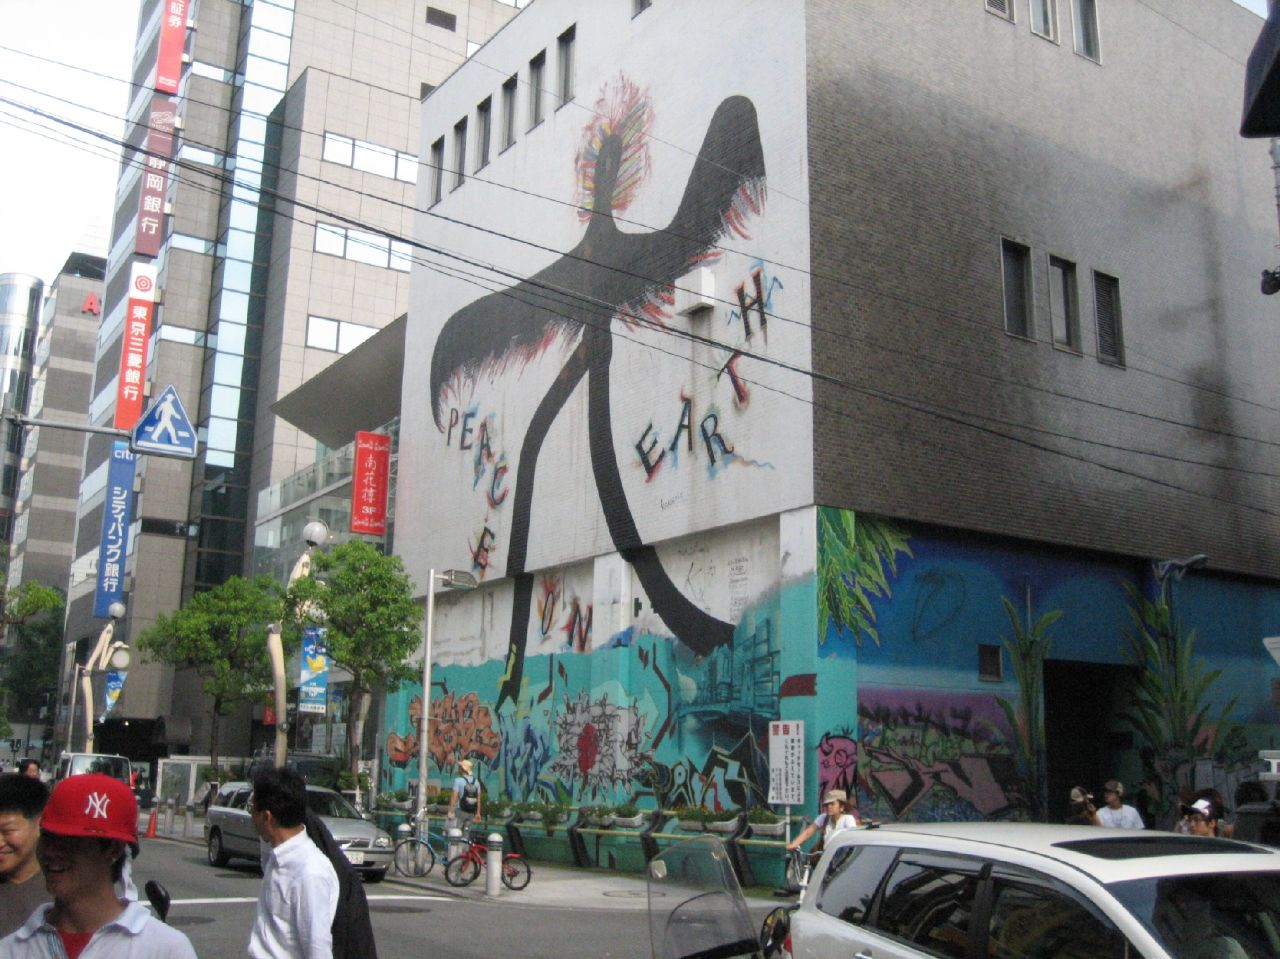 America Mura: The Mecca for Young Culture in Osaka